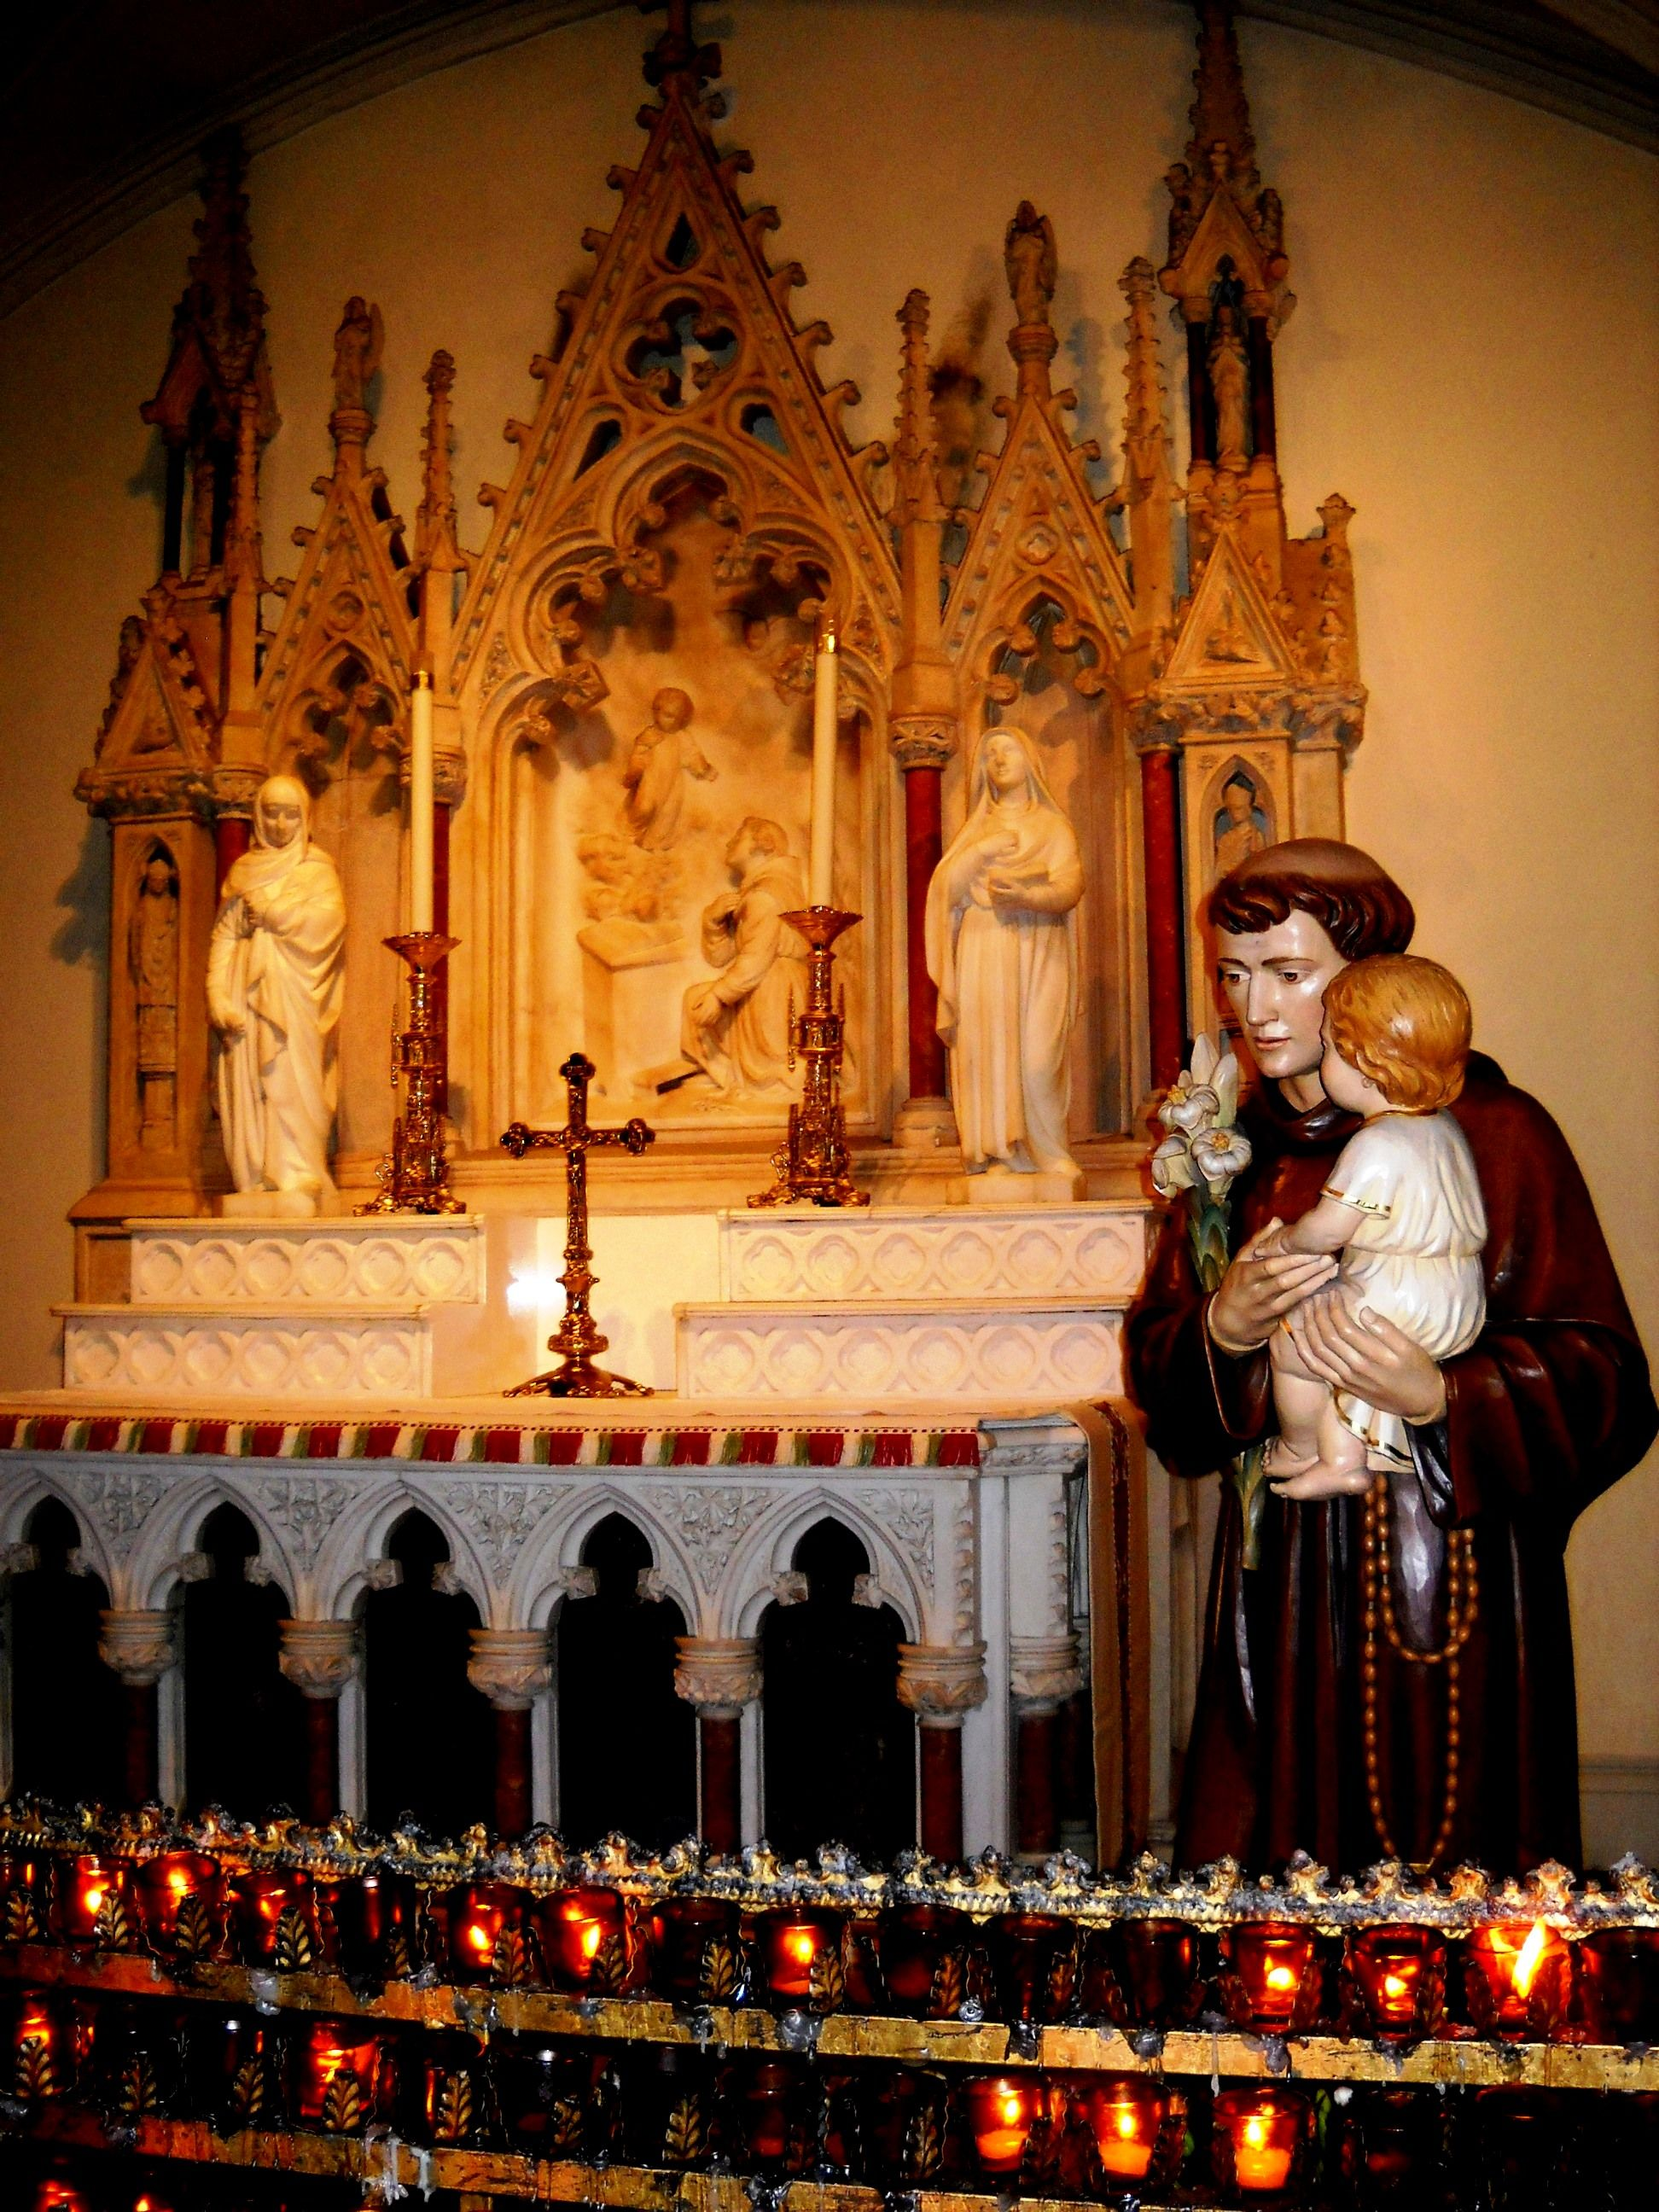 A side Altar at St. Patrick's, 5th Ave. York city, City